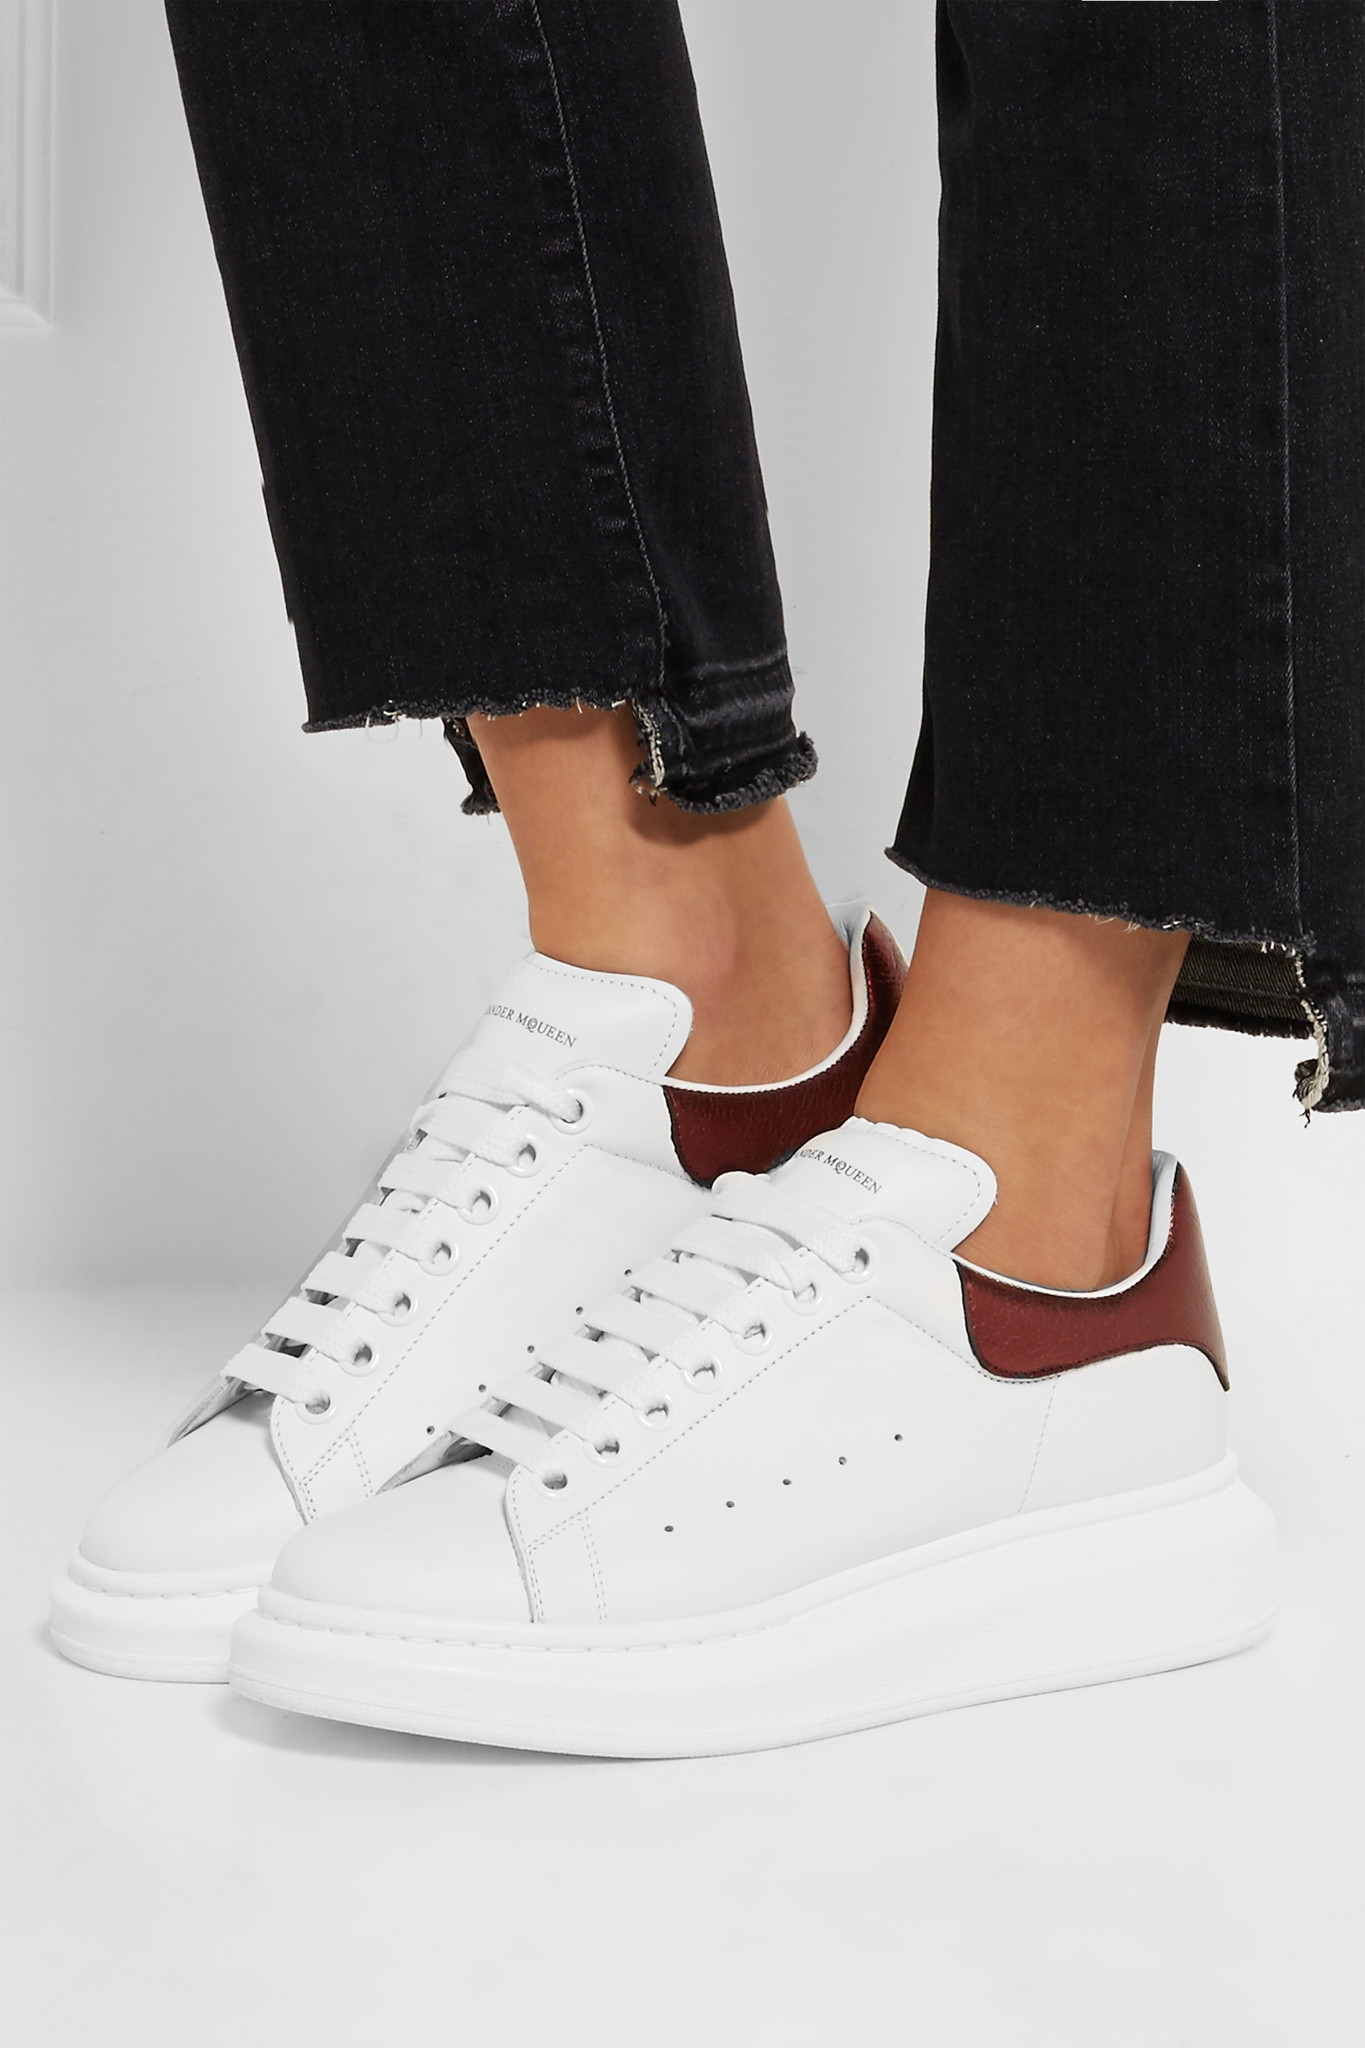 Metallic-trimmed Leather Exaggerated-sole Sneakers - White Alexander McQueen 2018 New Sale Online Geniue Stockist Cheap Online Ebay Online kIH7quOMwp